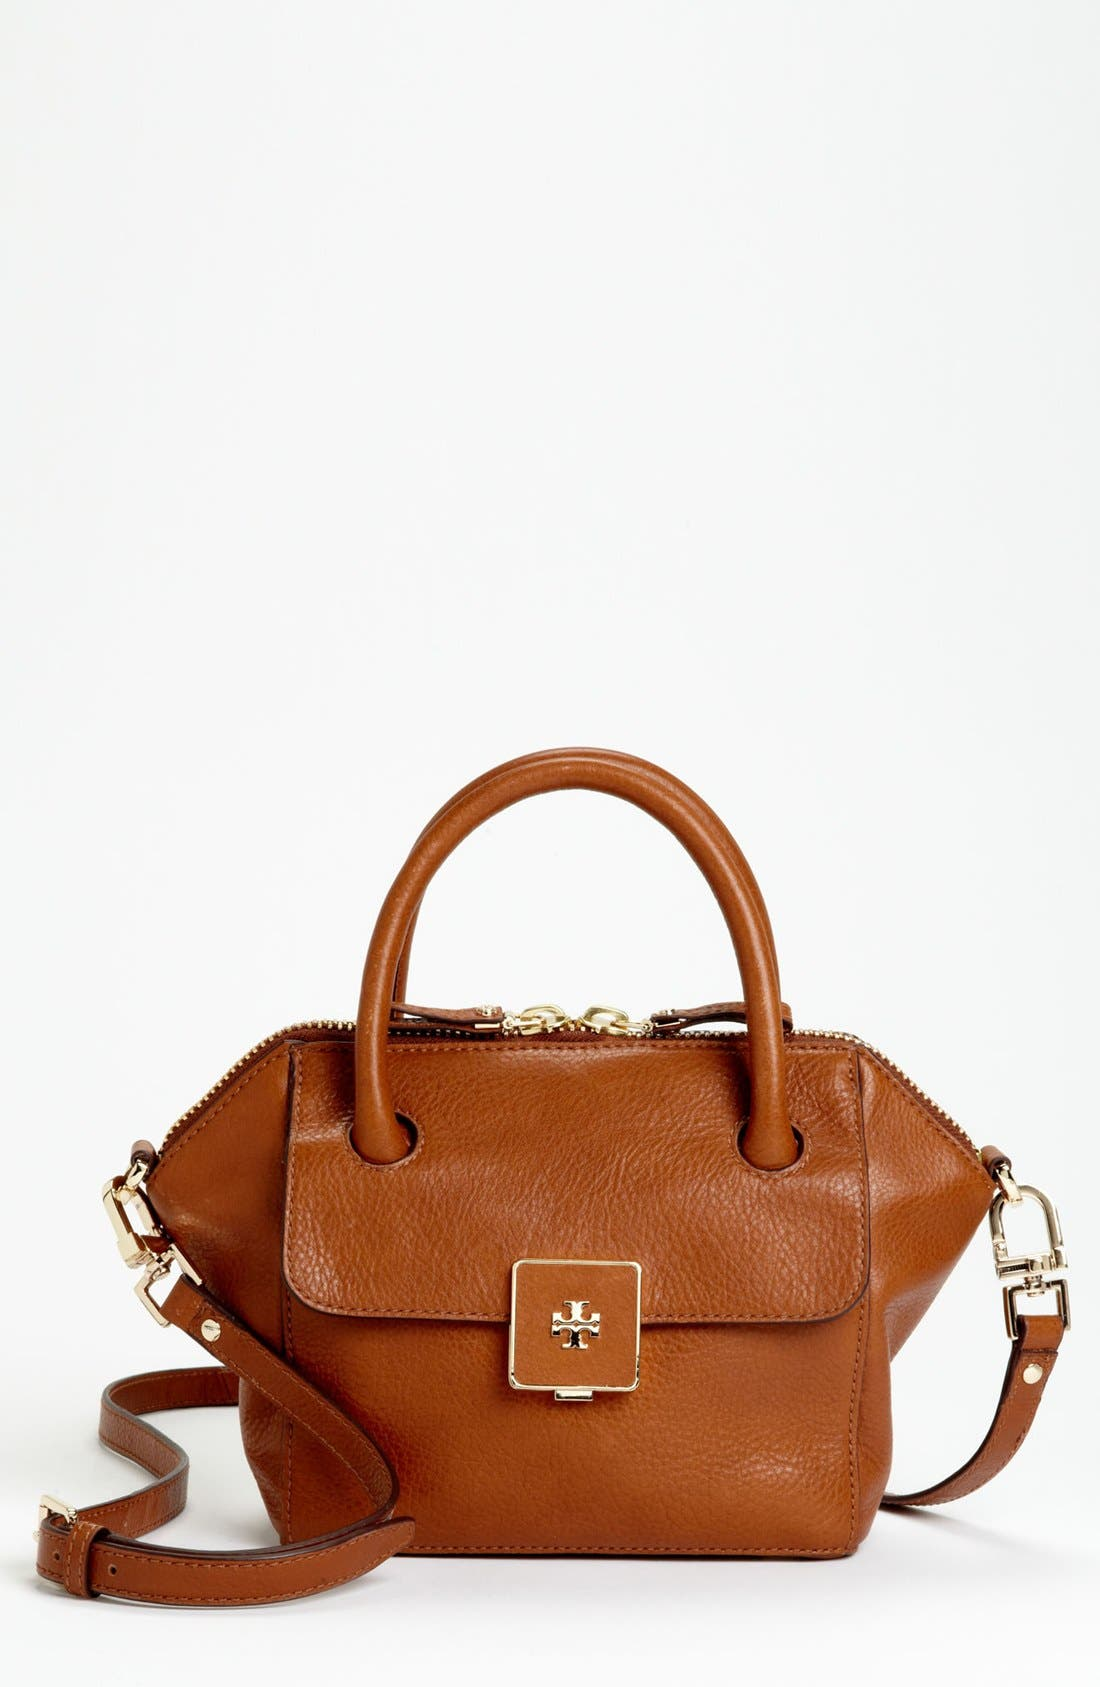 Alternate Image 1 Selected - Tory Burch 'Clara - Mini' Leather Crossbody Bag